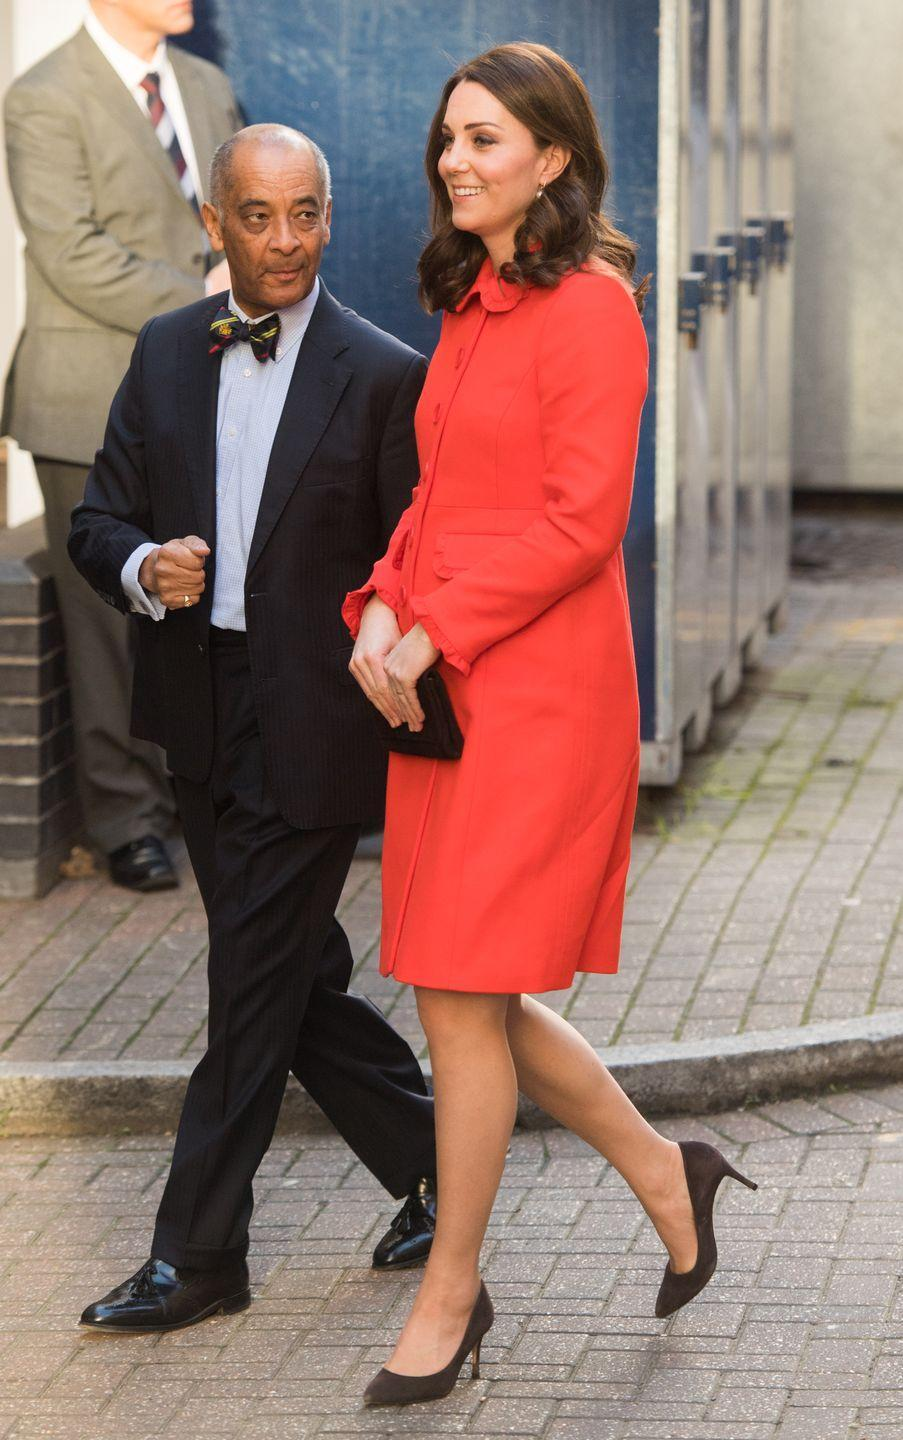 "<p>The Duchess wore a bright coat by Boden for a visit to Great Ormond Street Hospital. <a href=""https://www.townandcountrymag.com/society/tradition/a15392557/kate-middleton-not-wearing-engagement-ring/"" rel=""nofollow noopener"" target=""_blank"" data-ylk=""slk:Noticeably missing was Kate's signature engagement ring"" class=""link rapid-noclick-resp"">Noticeably missing was Kate's signature engagement ring</a>, which she removed before her visit due to hygiene requirements at the hospital. </p>"